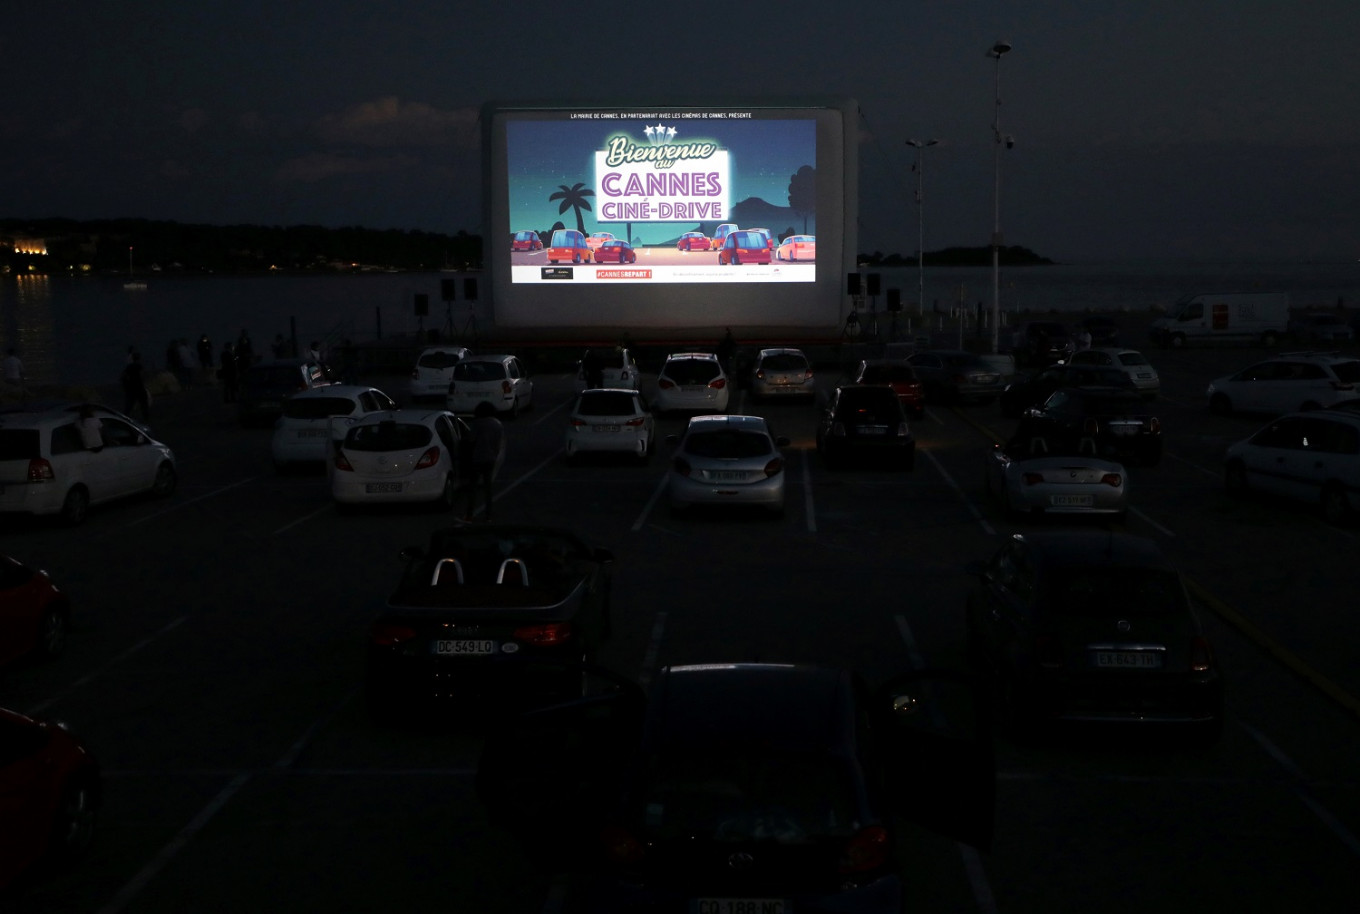 Popcorn, palm trees and face masks: Cannes rolls out drive-in cinema